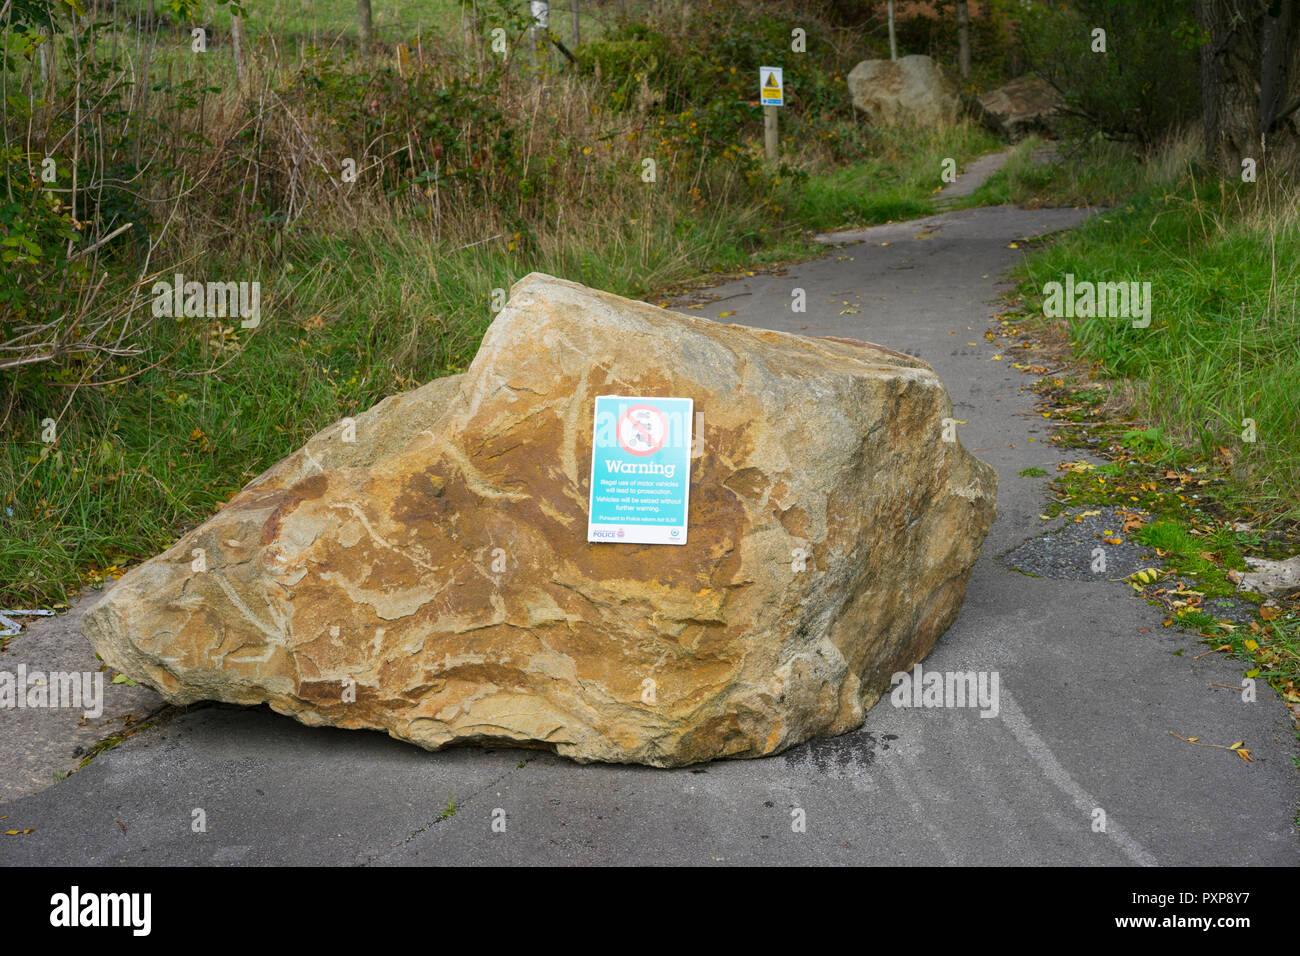 Rocks placed on country path to obstruct riders of motor bikes, Scramblers and Quad bikes from damaging the environment. Greater Manchester, UK. Stock Photo